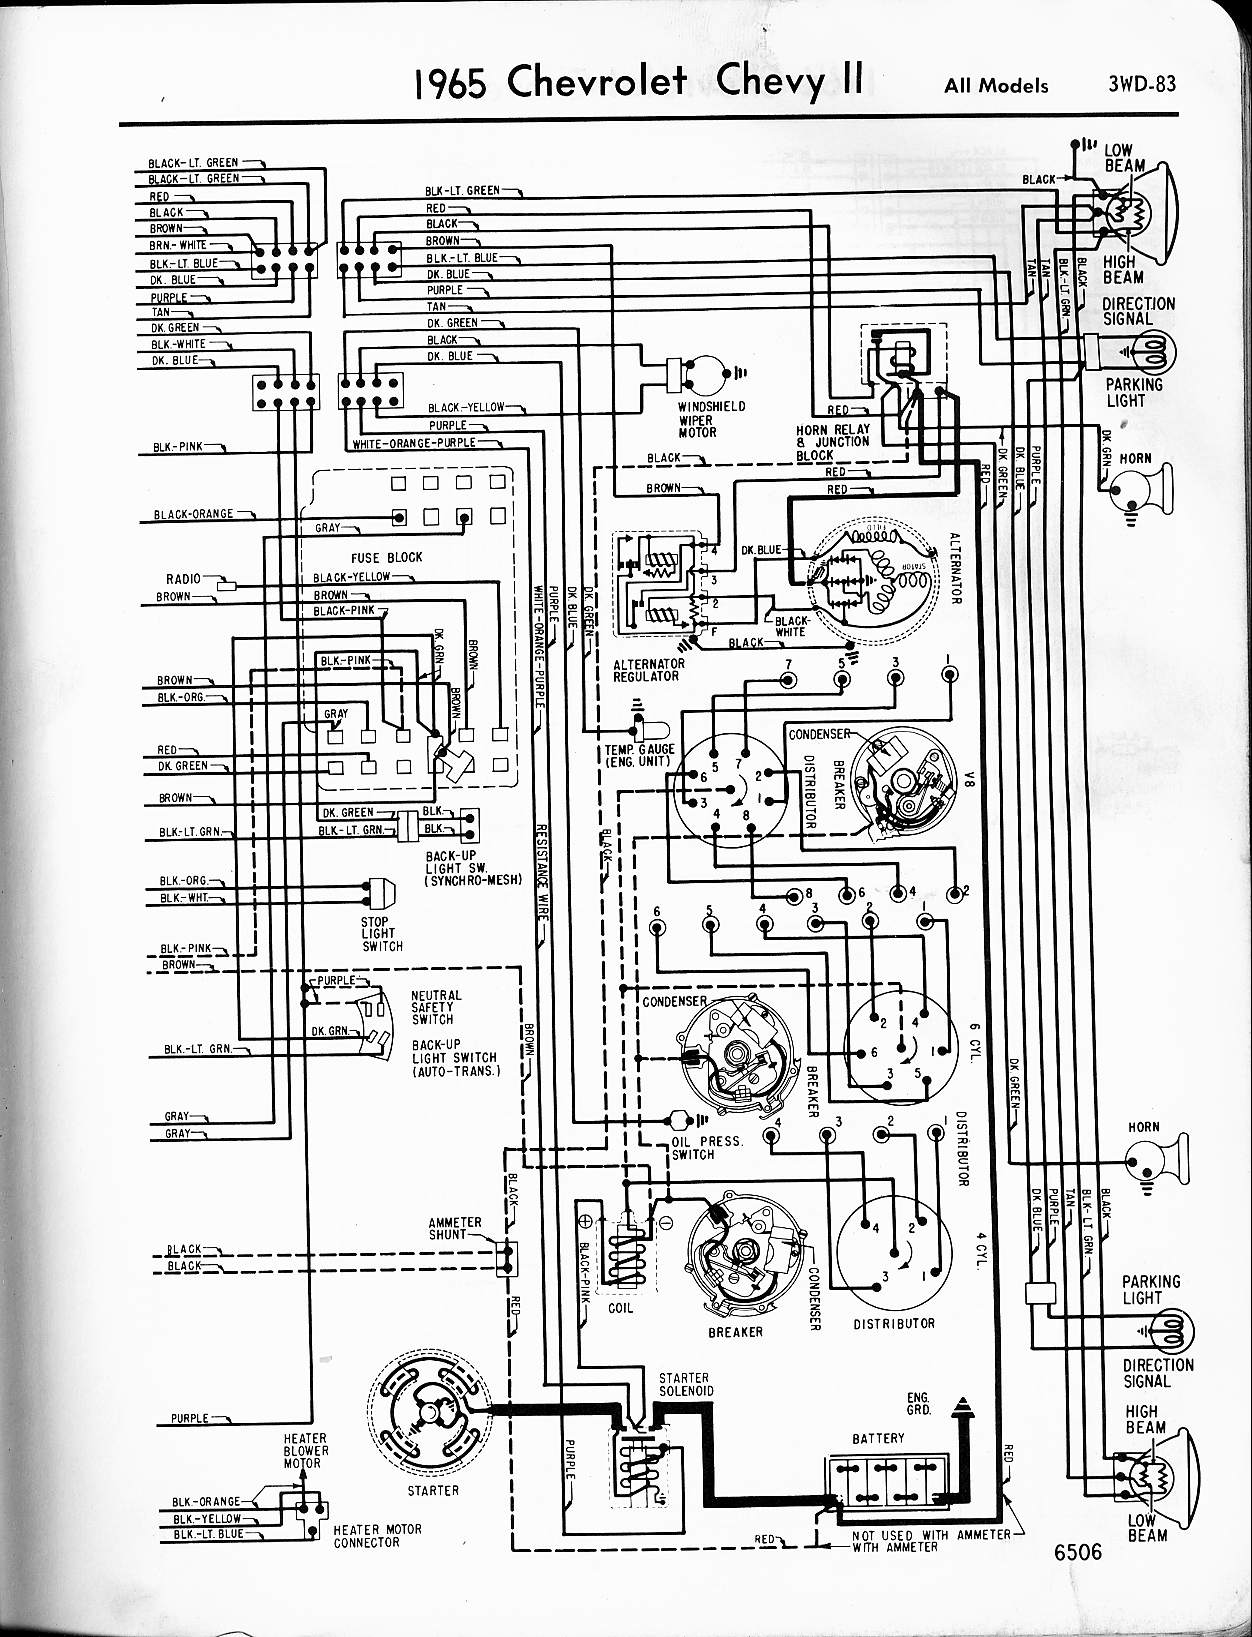 chevy diagrams 1965 chevy c10 wiring diagram 1965 chevy ii wiring diagram figure a figure b  sc 1 st  MiFinder : 1963 chevy truck wiring diagram - yogabreezes.com